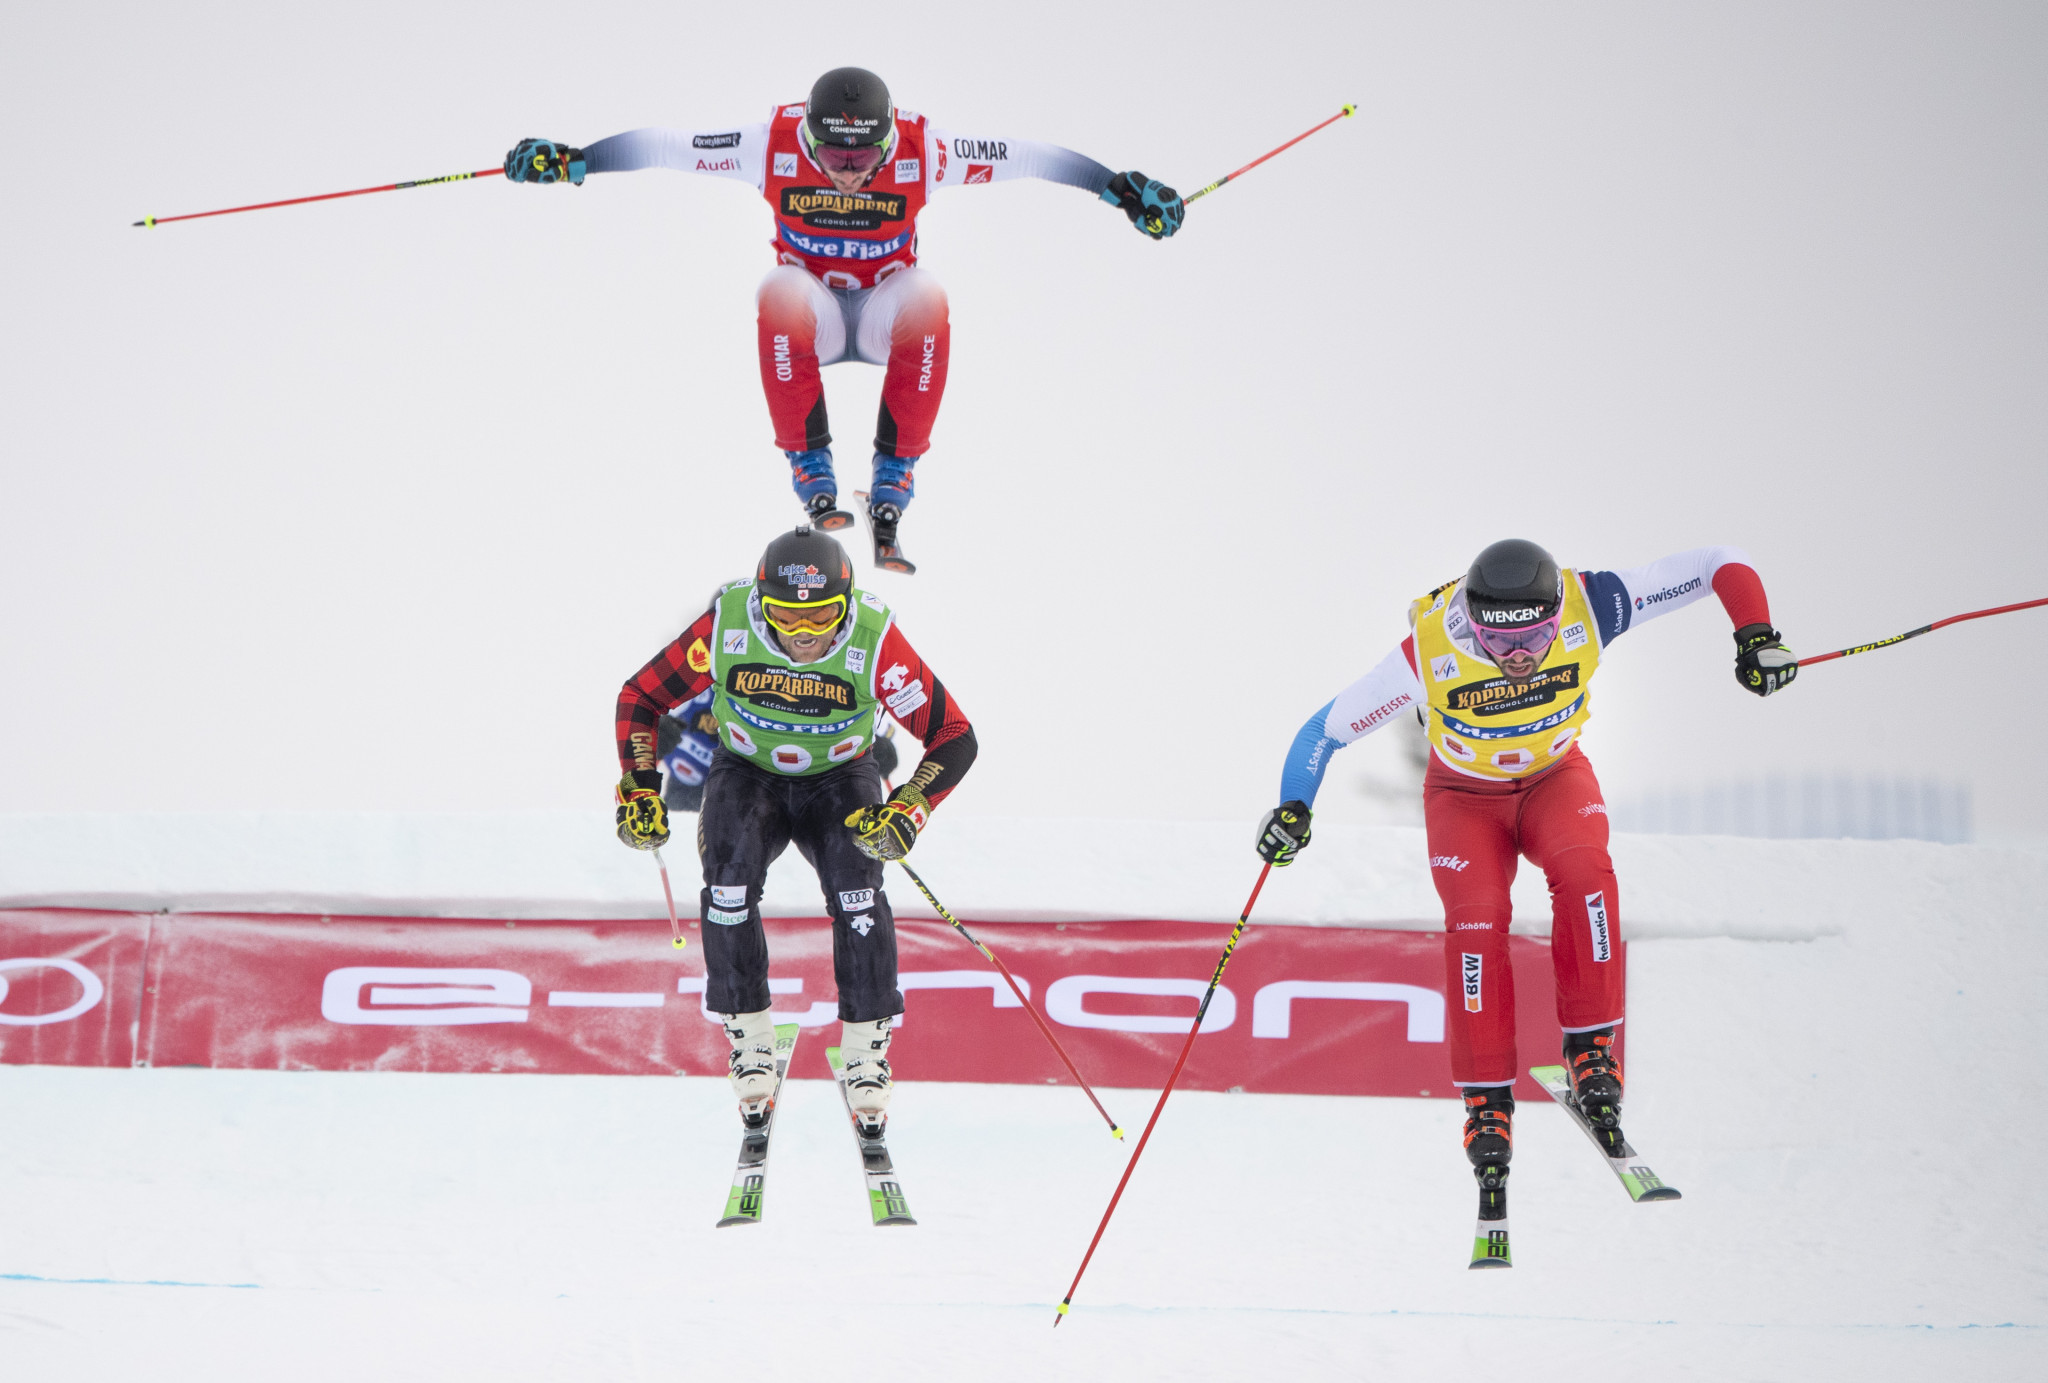 Ryan Regez of Switzerland, yellow, overtakes Brady Leman of Canada, green, in the final jump ©Getty Images